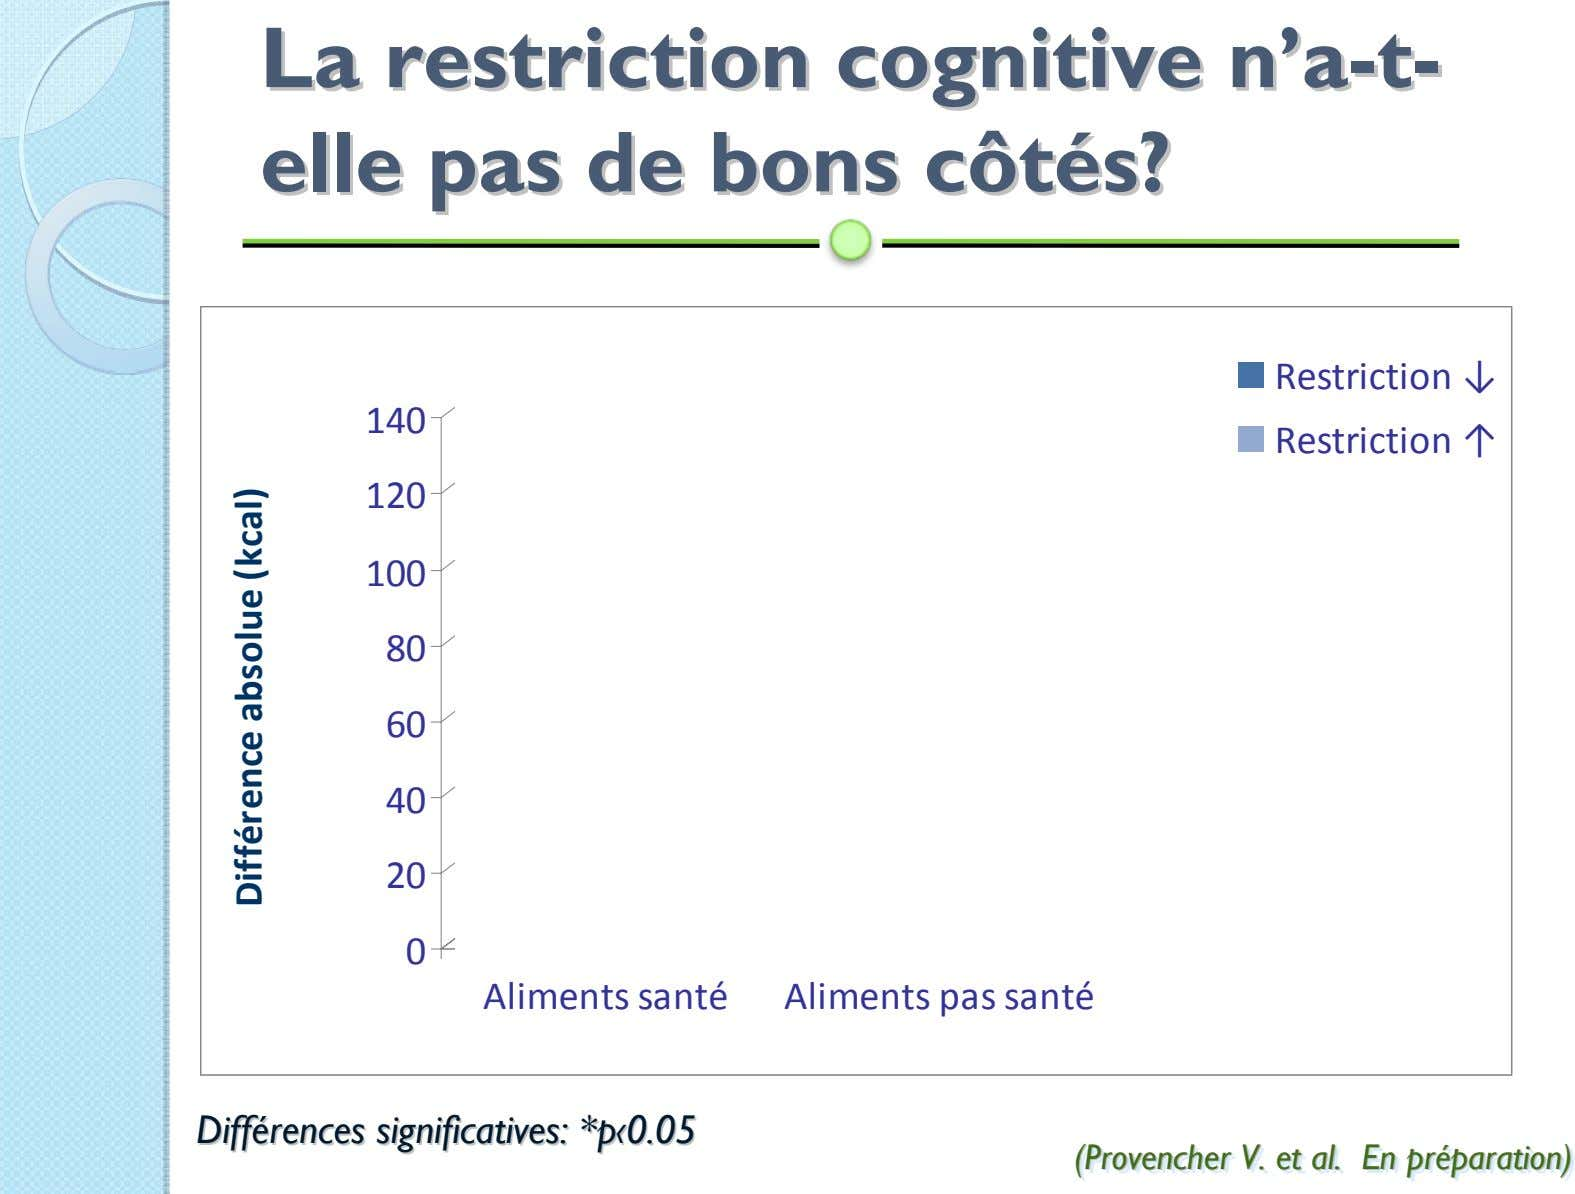 LaLa restrictionrestriction cognitivecognitive nn''aa--tt-- elleelle paspas dede bonsbons côtcôtéés?s? Rest ri